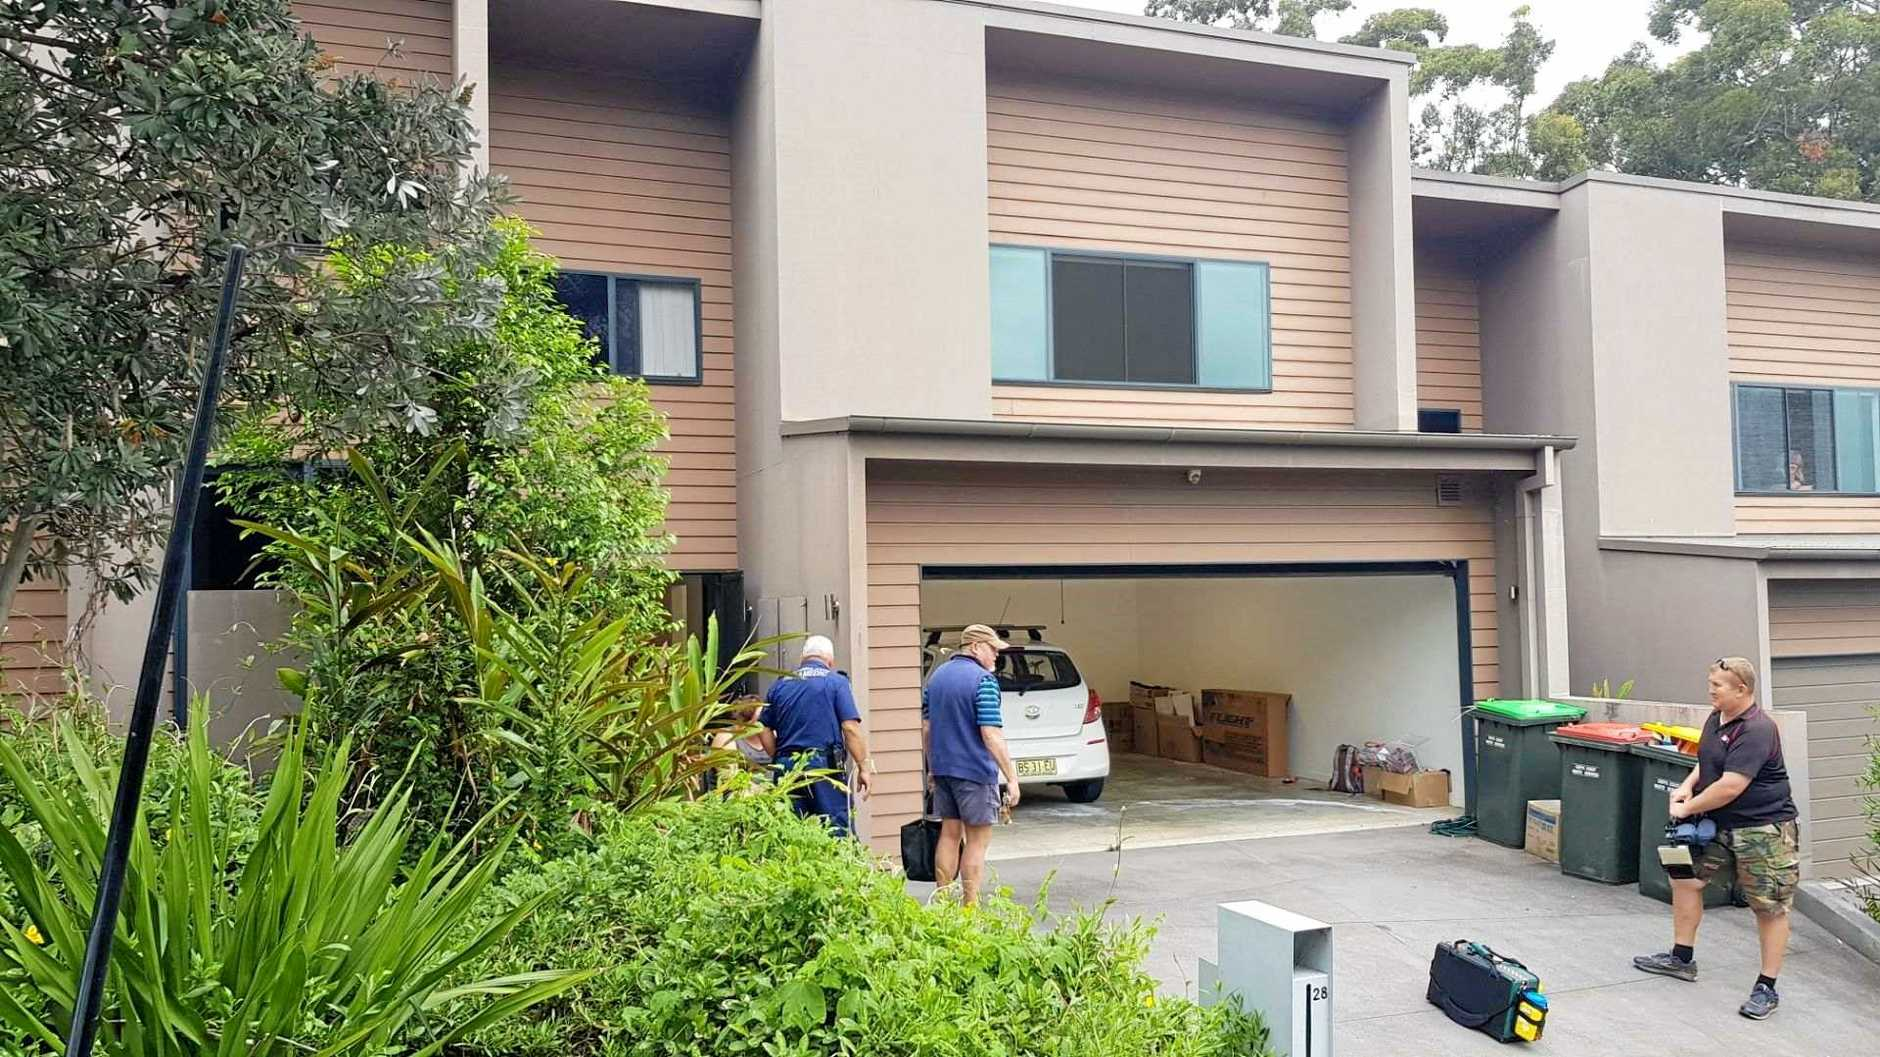 Two women have been hospitalised after a balcony collapsed at a Coffs Harbour home this evening.